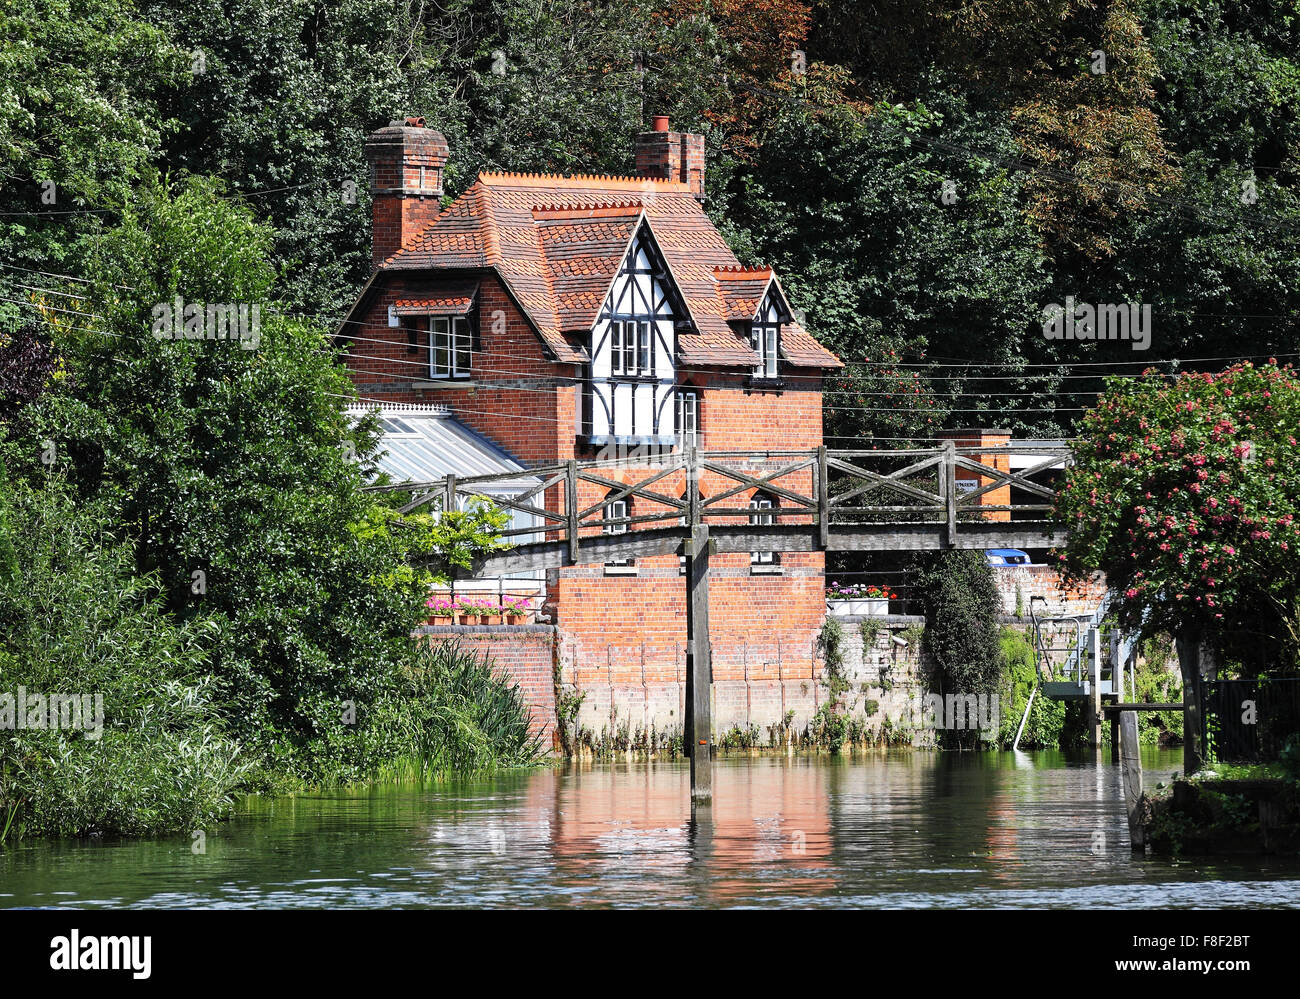 House on the Banks of the River Thames by Henley lock in England Stock Photo